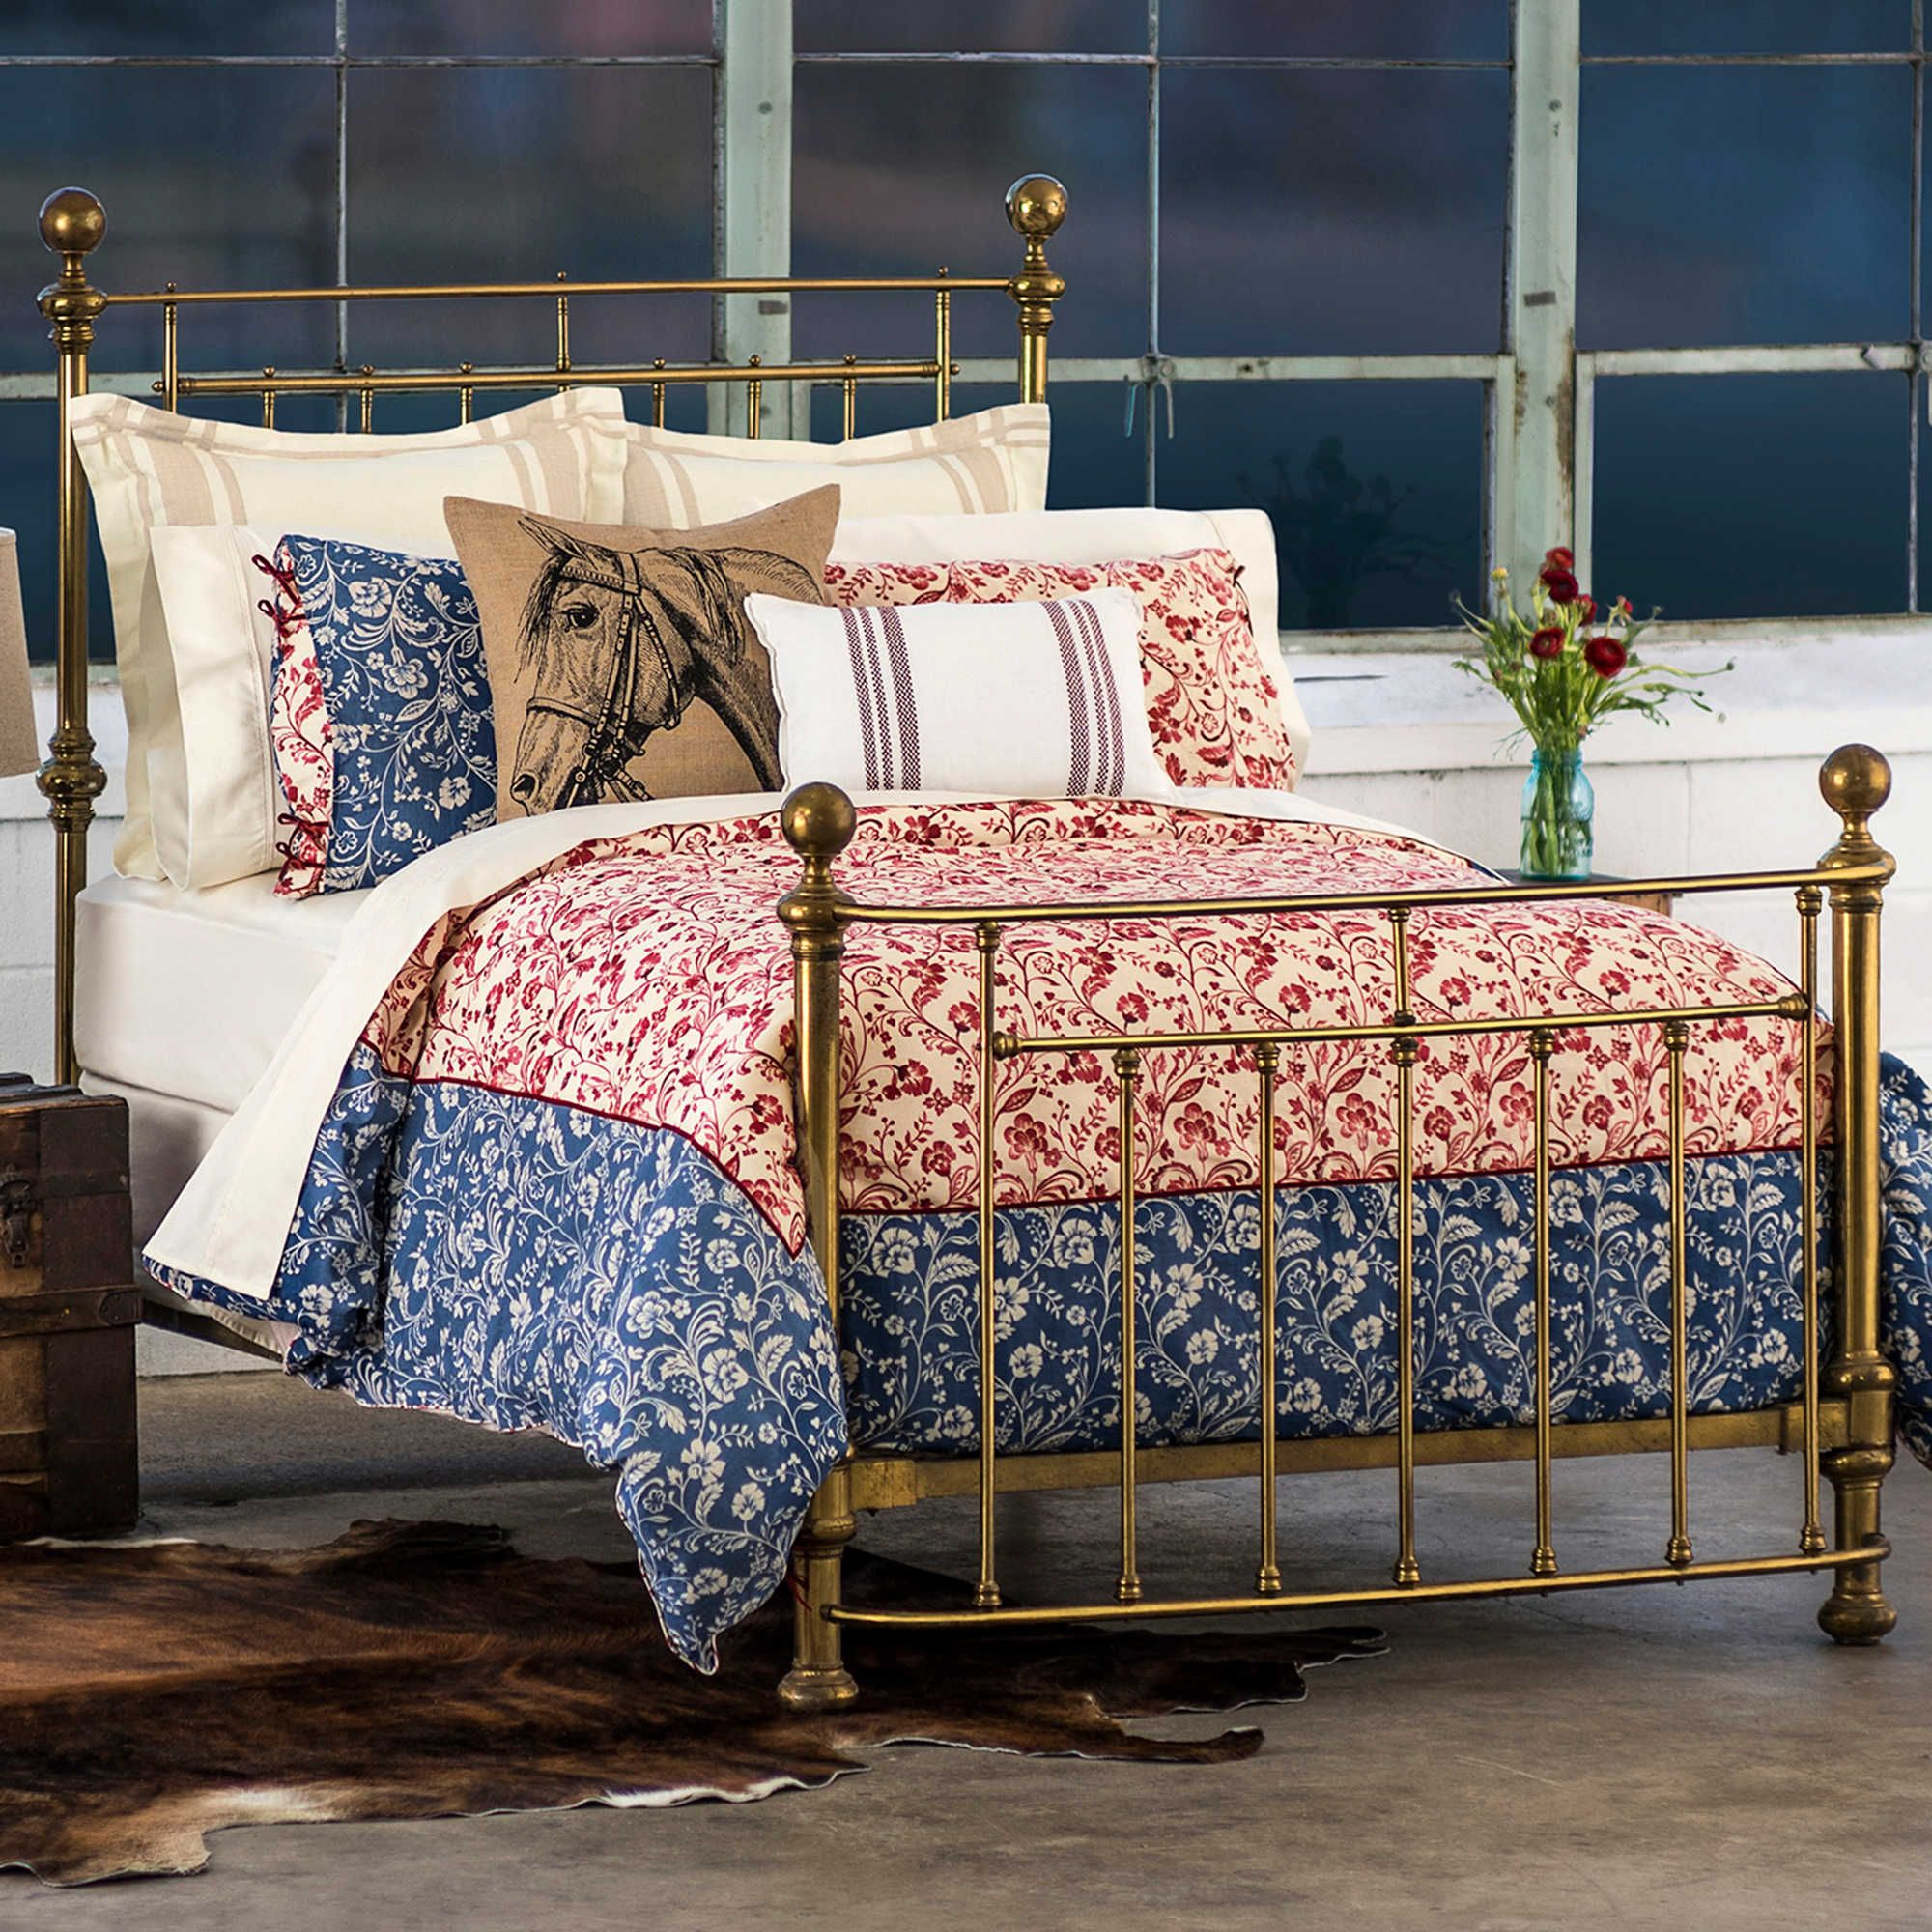 linen hawkins on ny stonewashed products lin comforter shop mid queen bedding bobbi